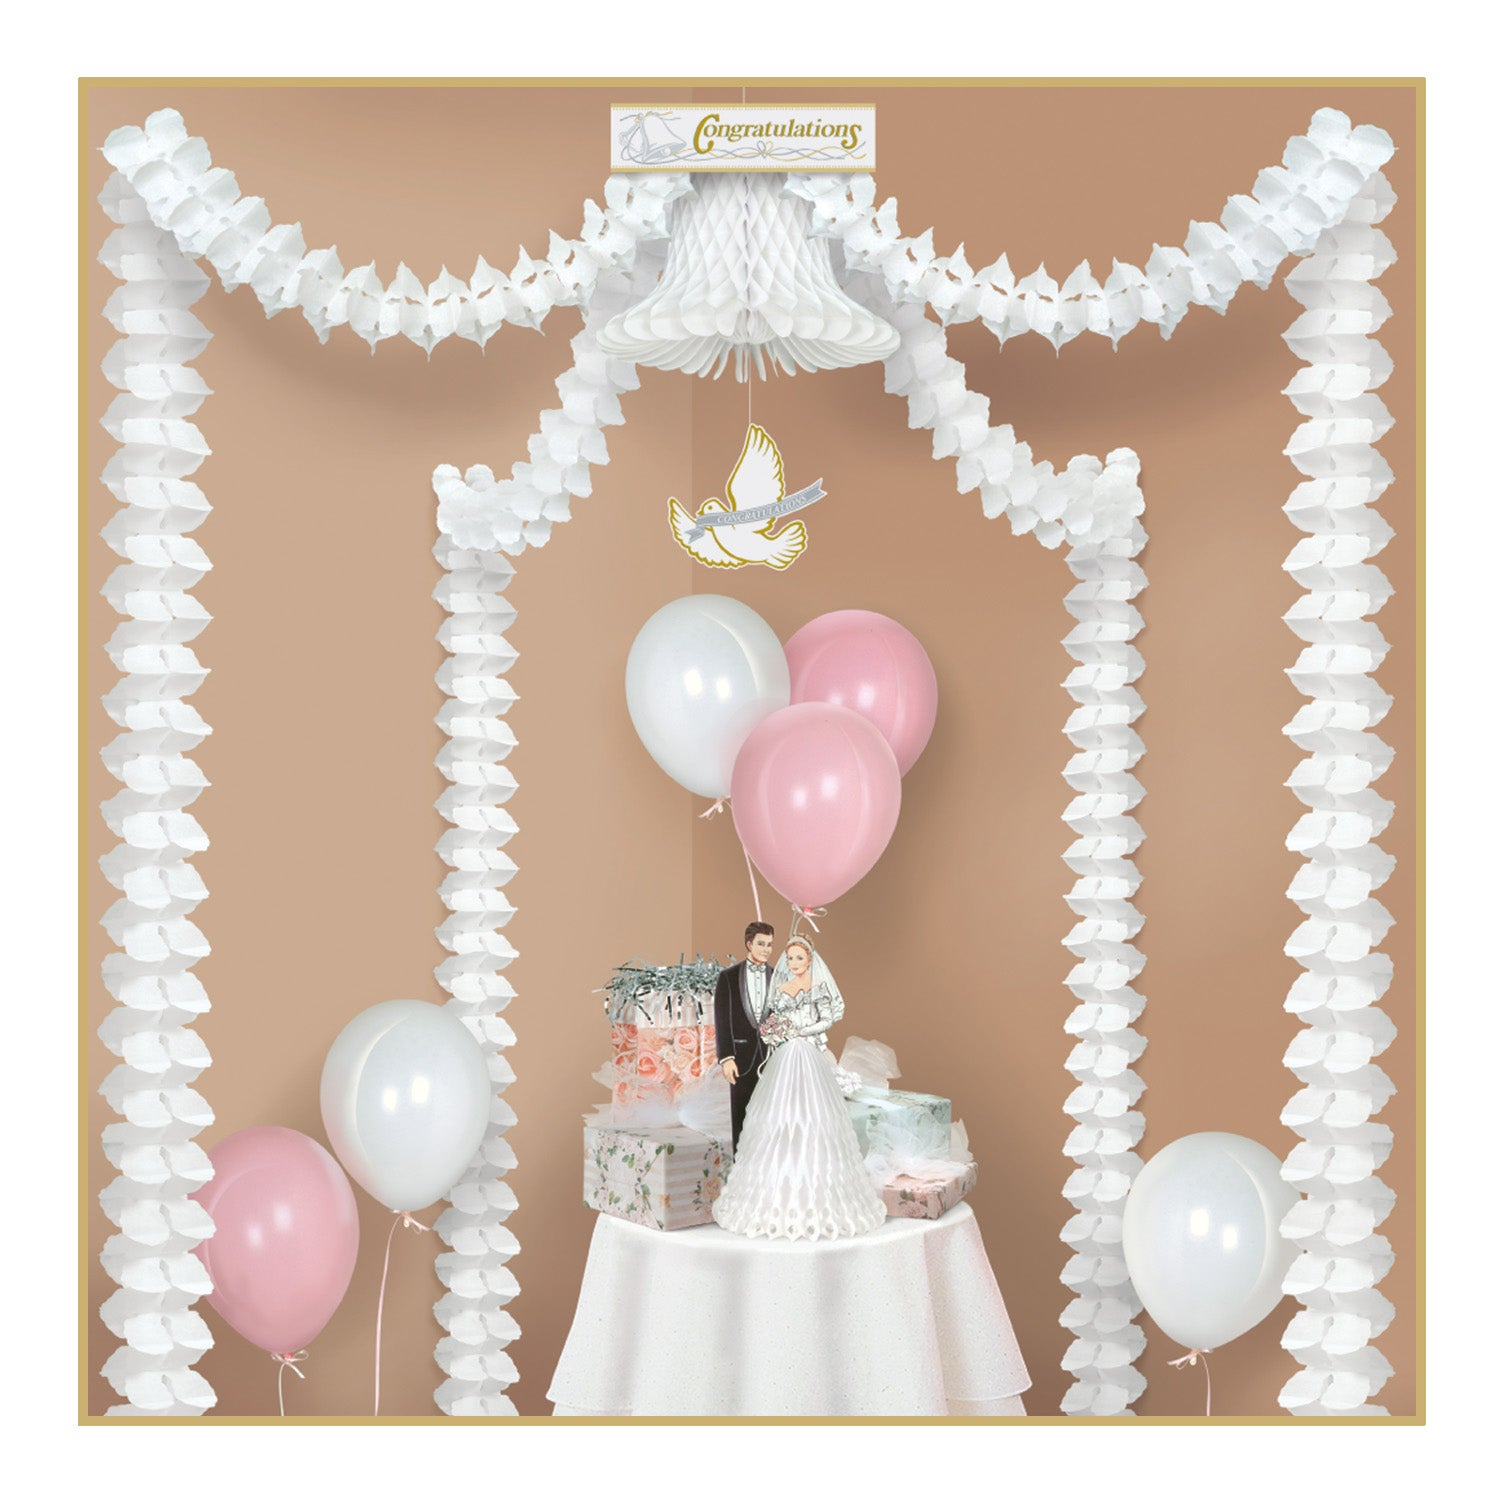 Congratulations Party Canopy by Beistle - Wedding Theme Decorations